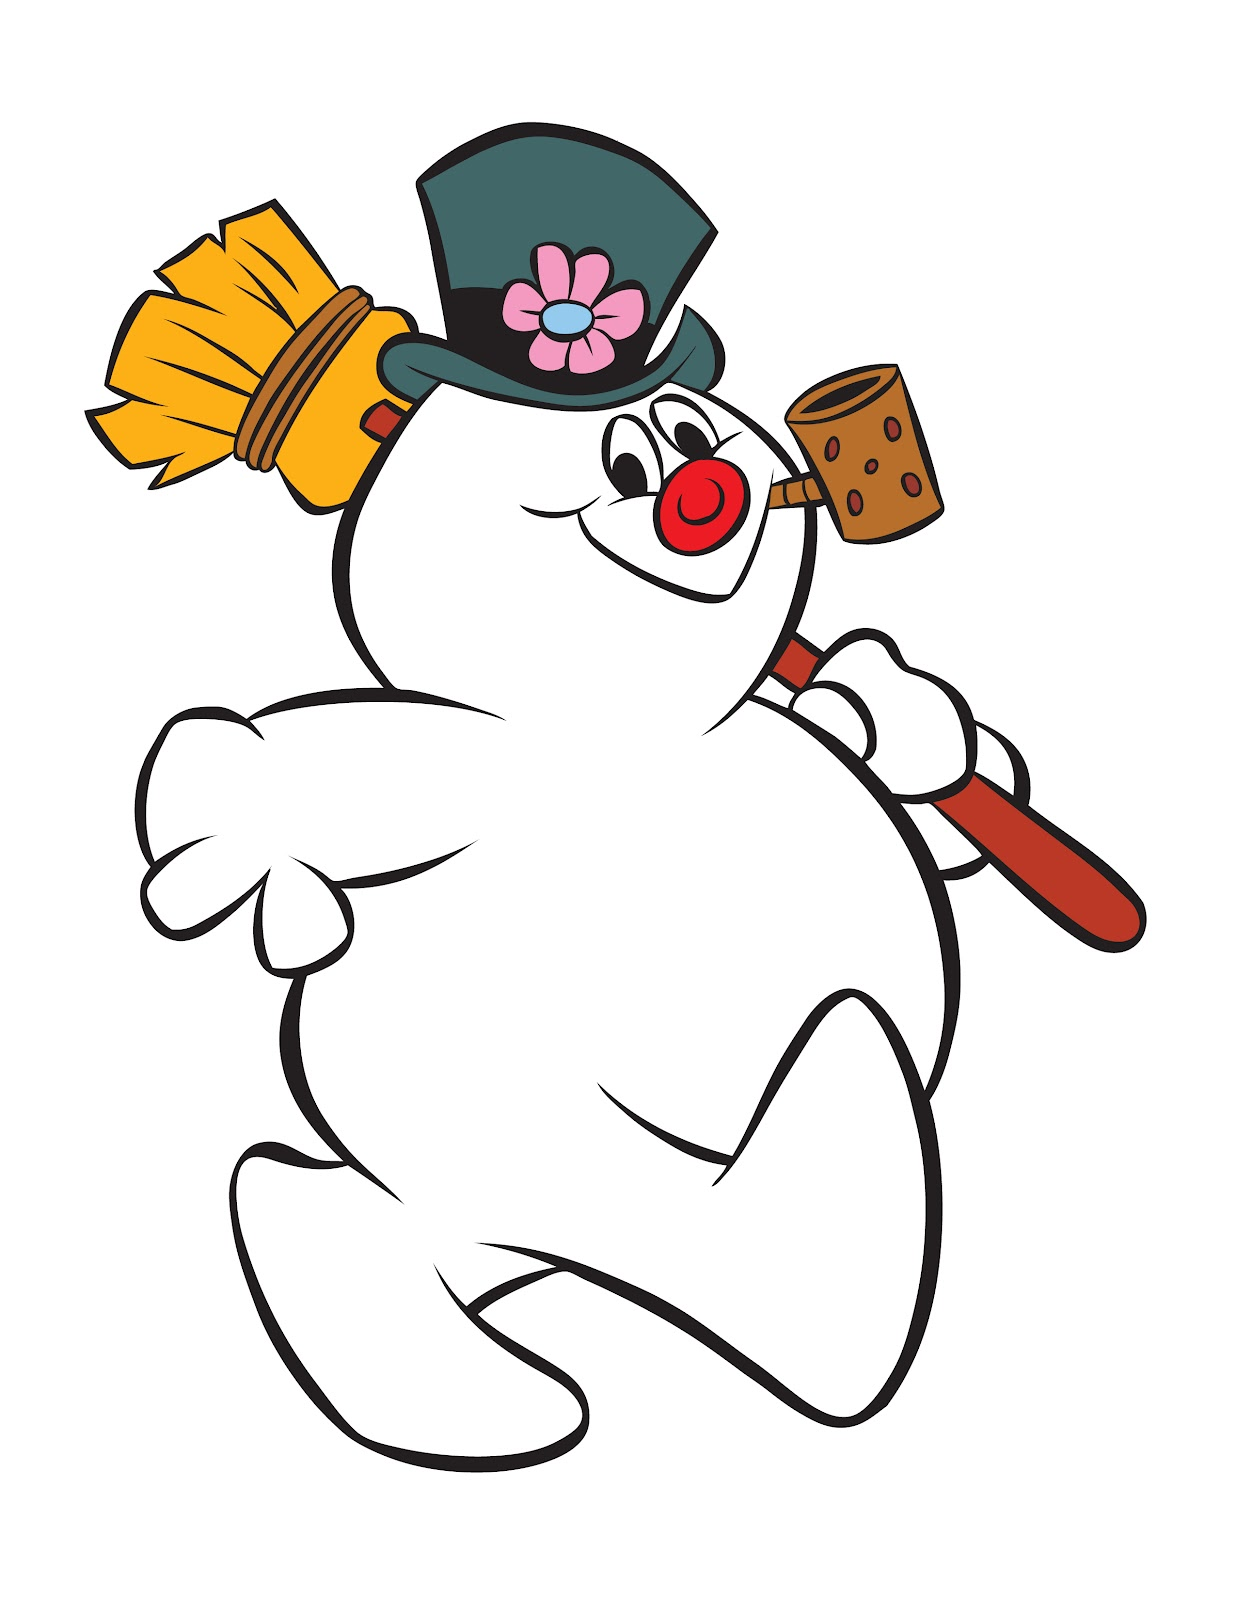 1236x1600 A Snowman Is A Type Of Snow Sculpture That Is Very Easy To Make